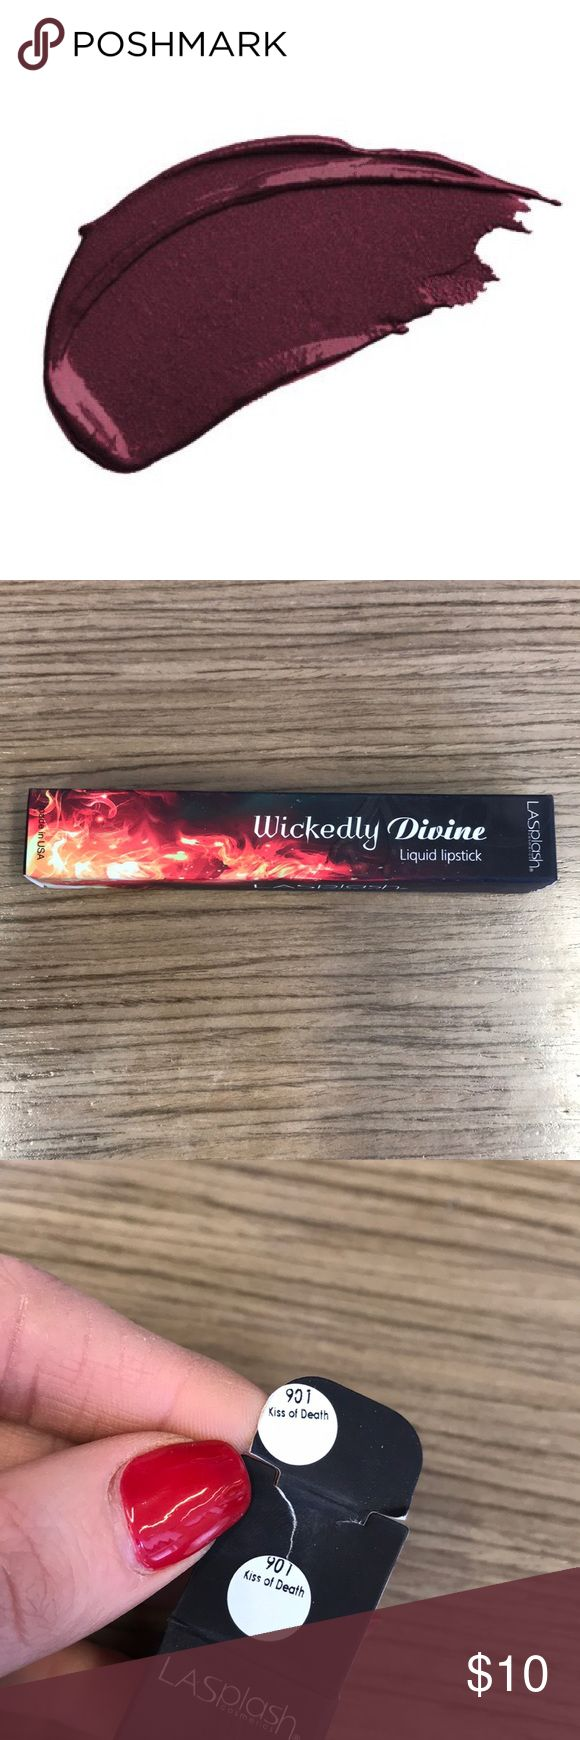 LA Splash Kiss of Death Liquid Silk Lipstick Never used (just opened to take these pictures) LA Splash wickedly divine Kiss of Desty liquid silk lipstick. Water resistance up to 4 hours. Cruelty free, paraben Free, ultra matte. Longwear. Lightweight. LA splash Makeup Lipstick